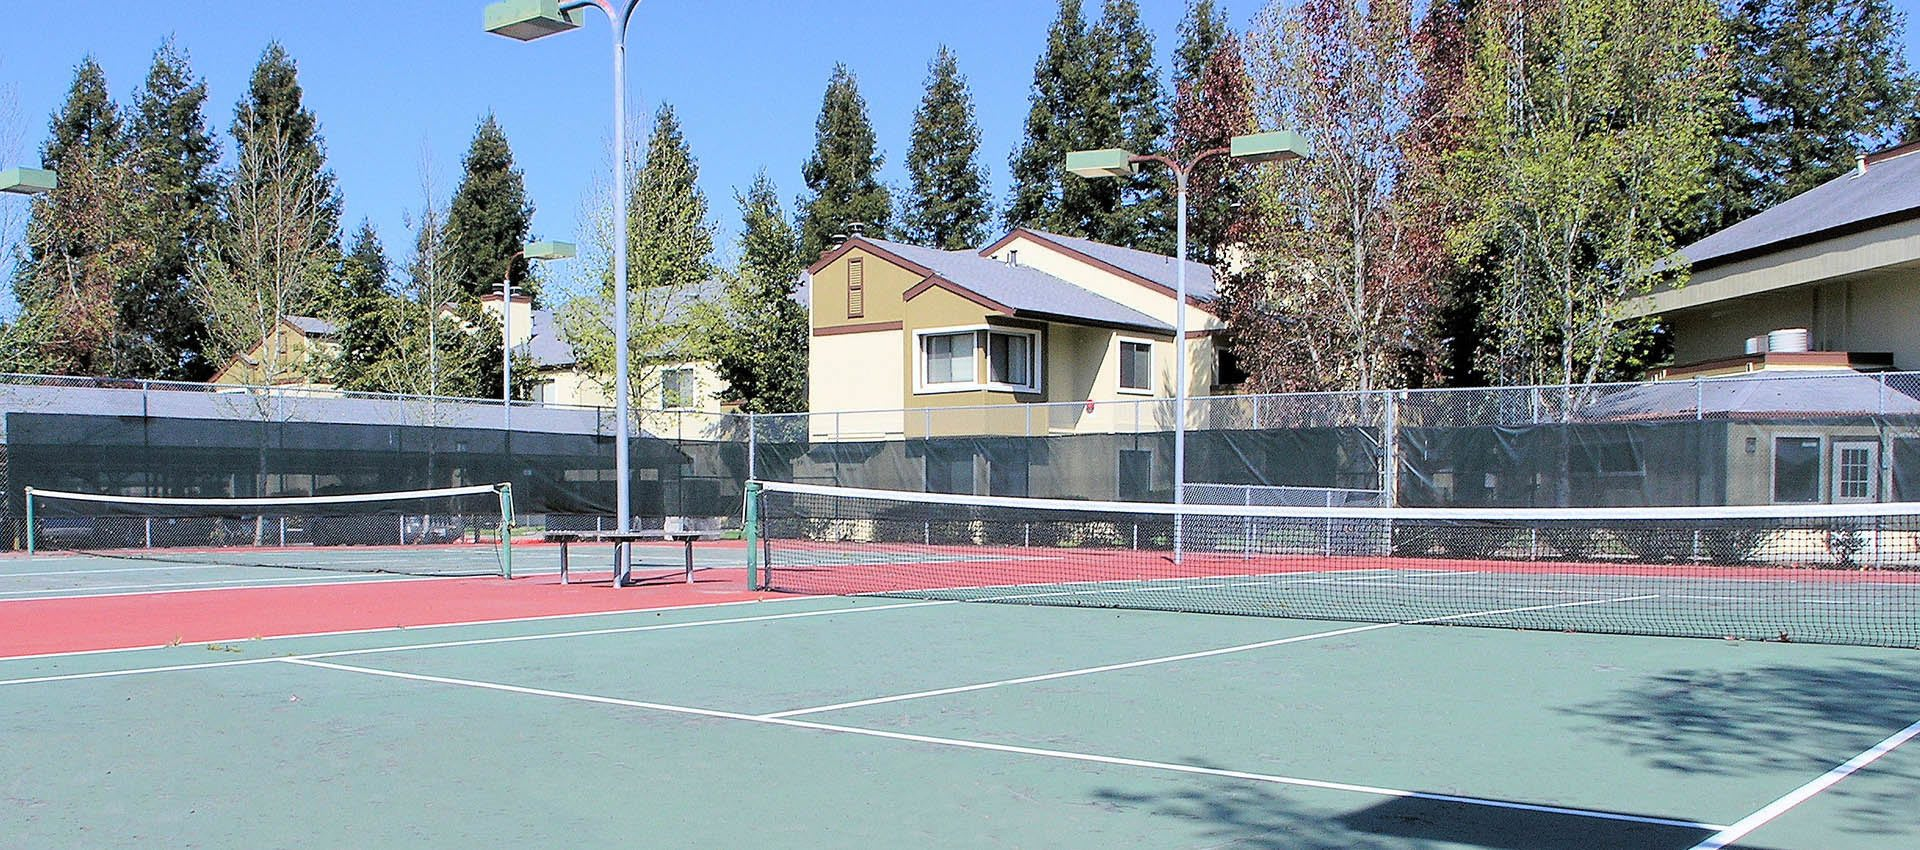 Tennis courts at Park Ridge Apartment Homes in Rohnert Park, CA